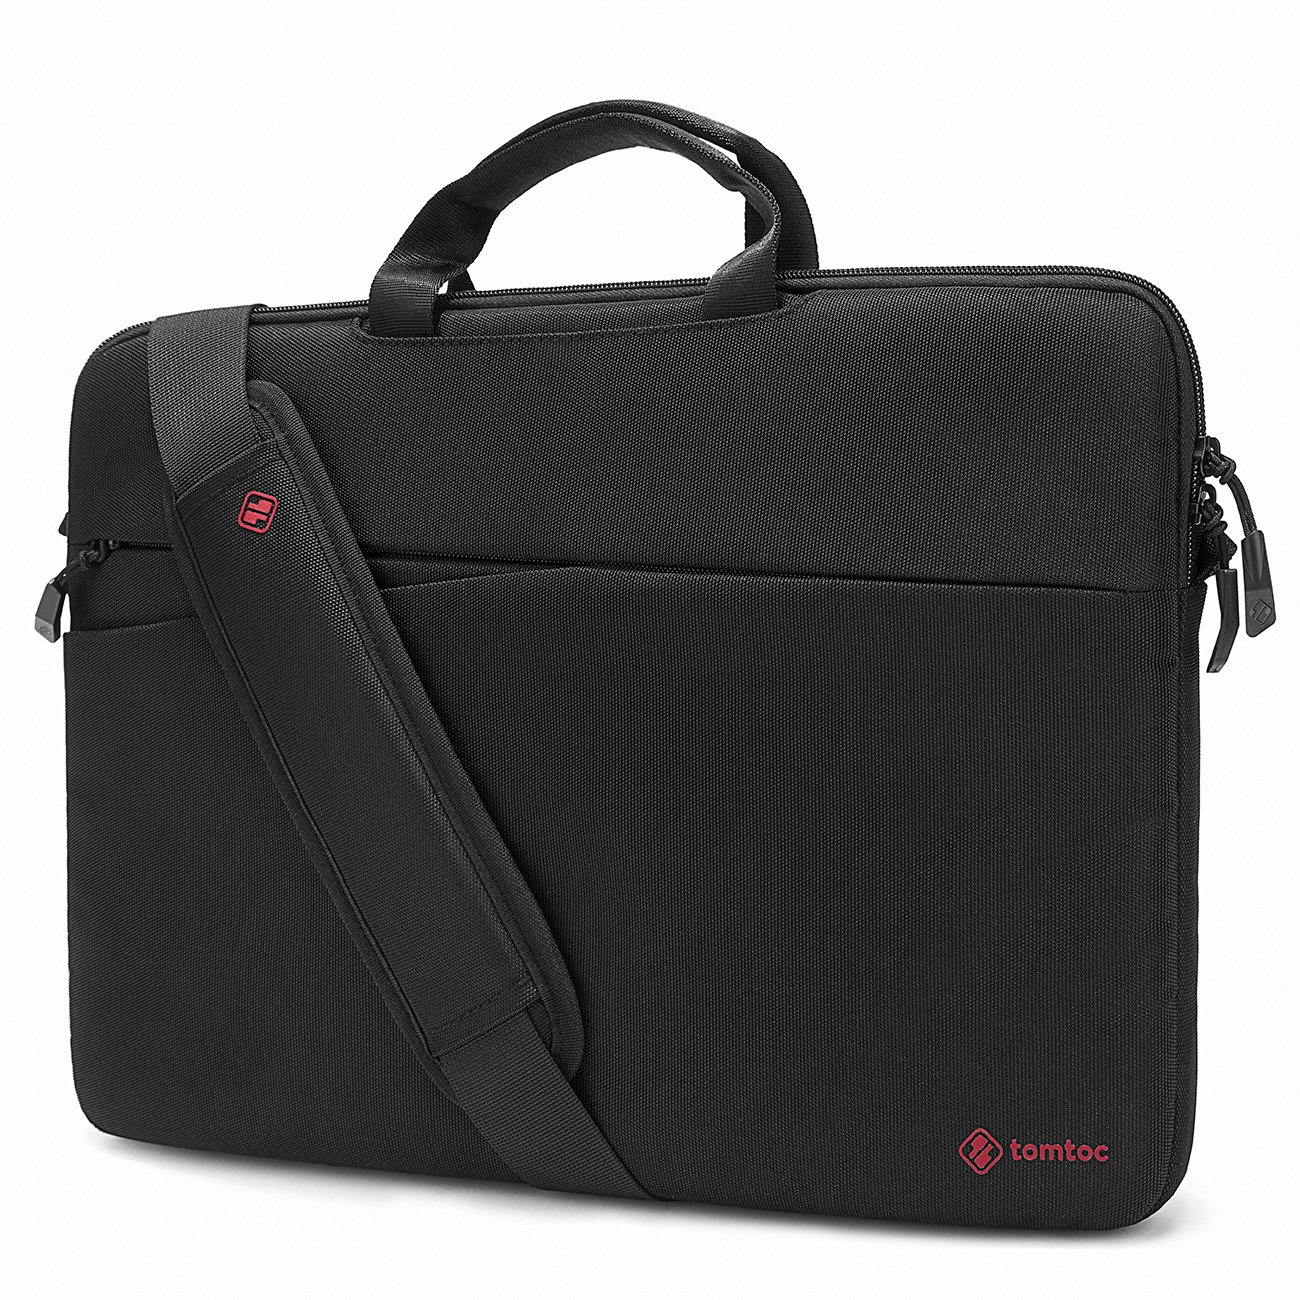 tomtoc Slim Laptop Shoulder Bag Sleeve Fit for 14-inch Lenovo ThinkPad X1 Carbon Yoga | 15'' New MacBook Pro Touch Bar A1990 A1707 | HP Acer Chromebook Notebook 14'', with Handle & Accessory Pocket